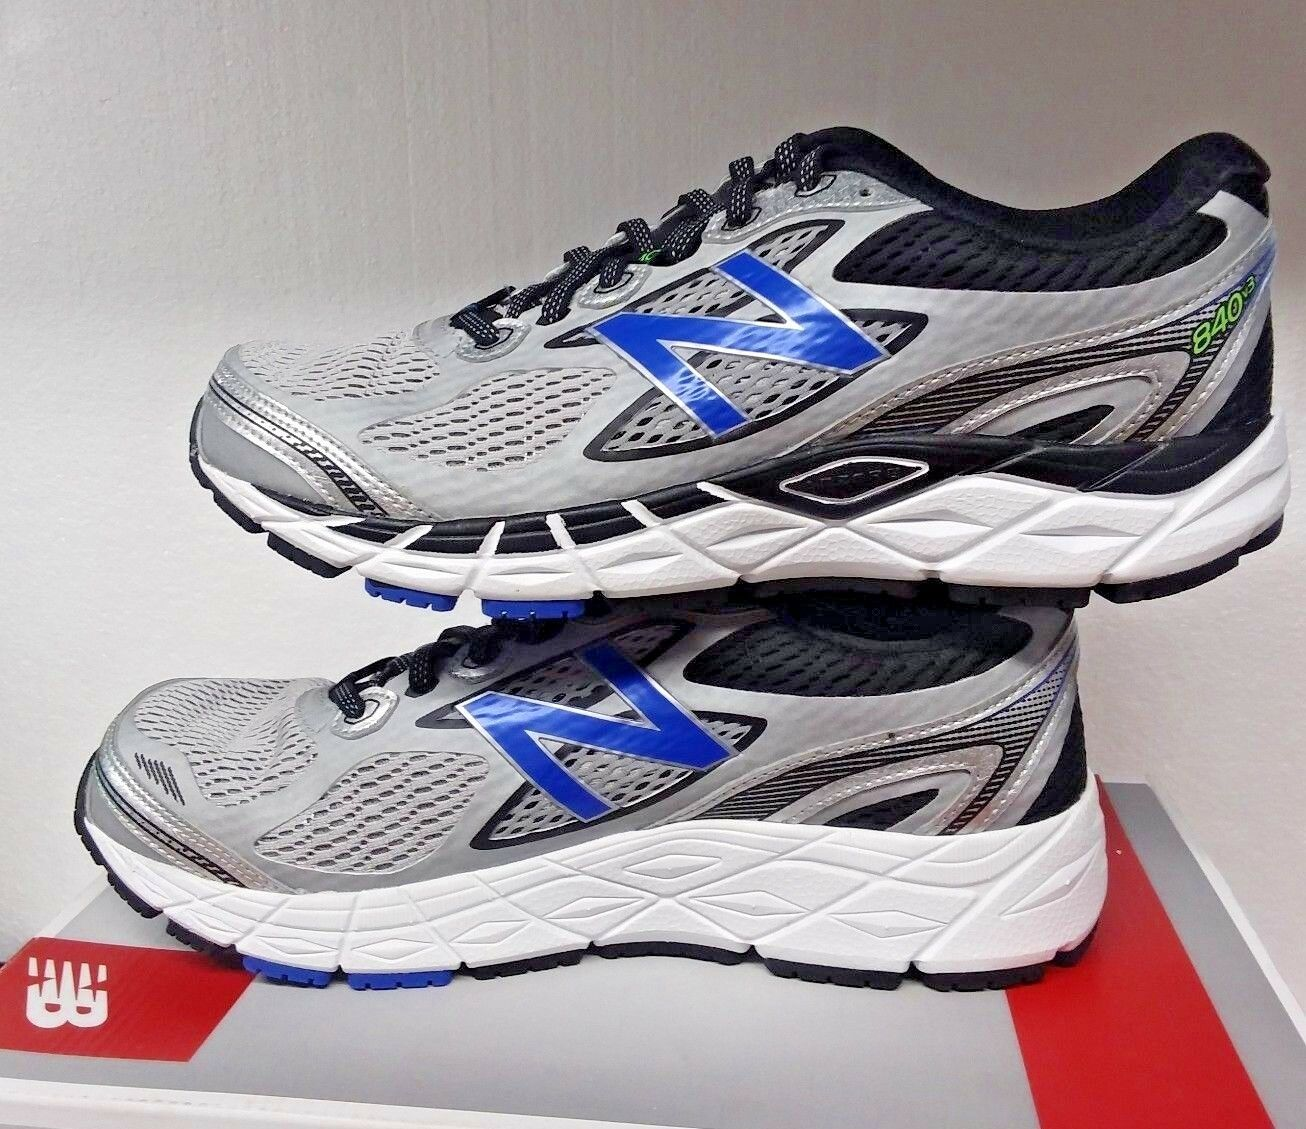 New Balance Men's 840SB3, Running Course,Silver with bluee & Black Mens US 8